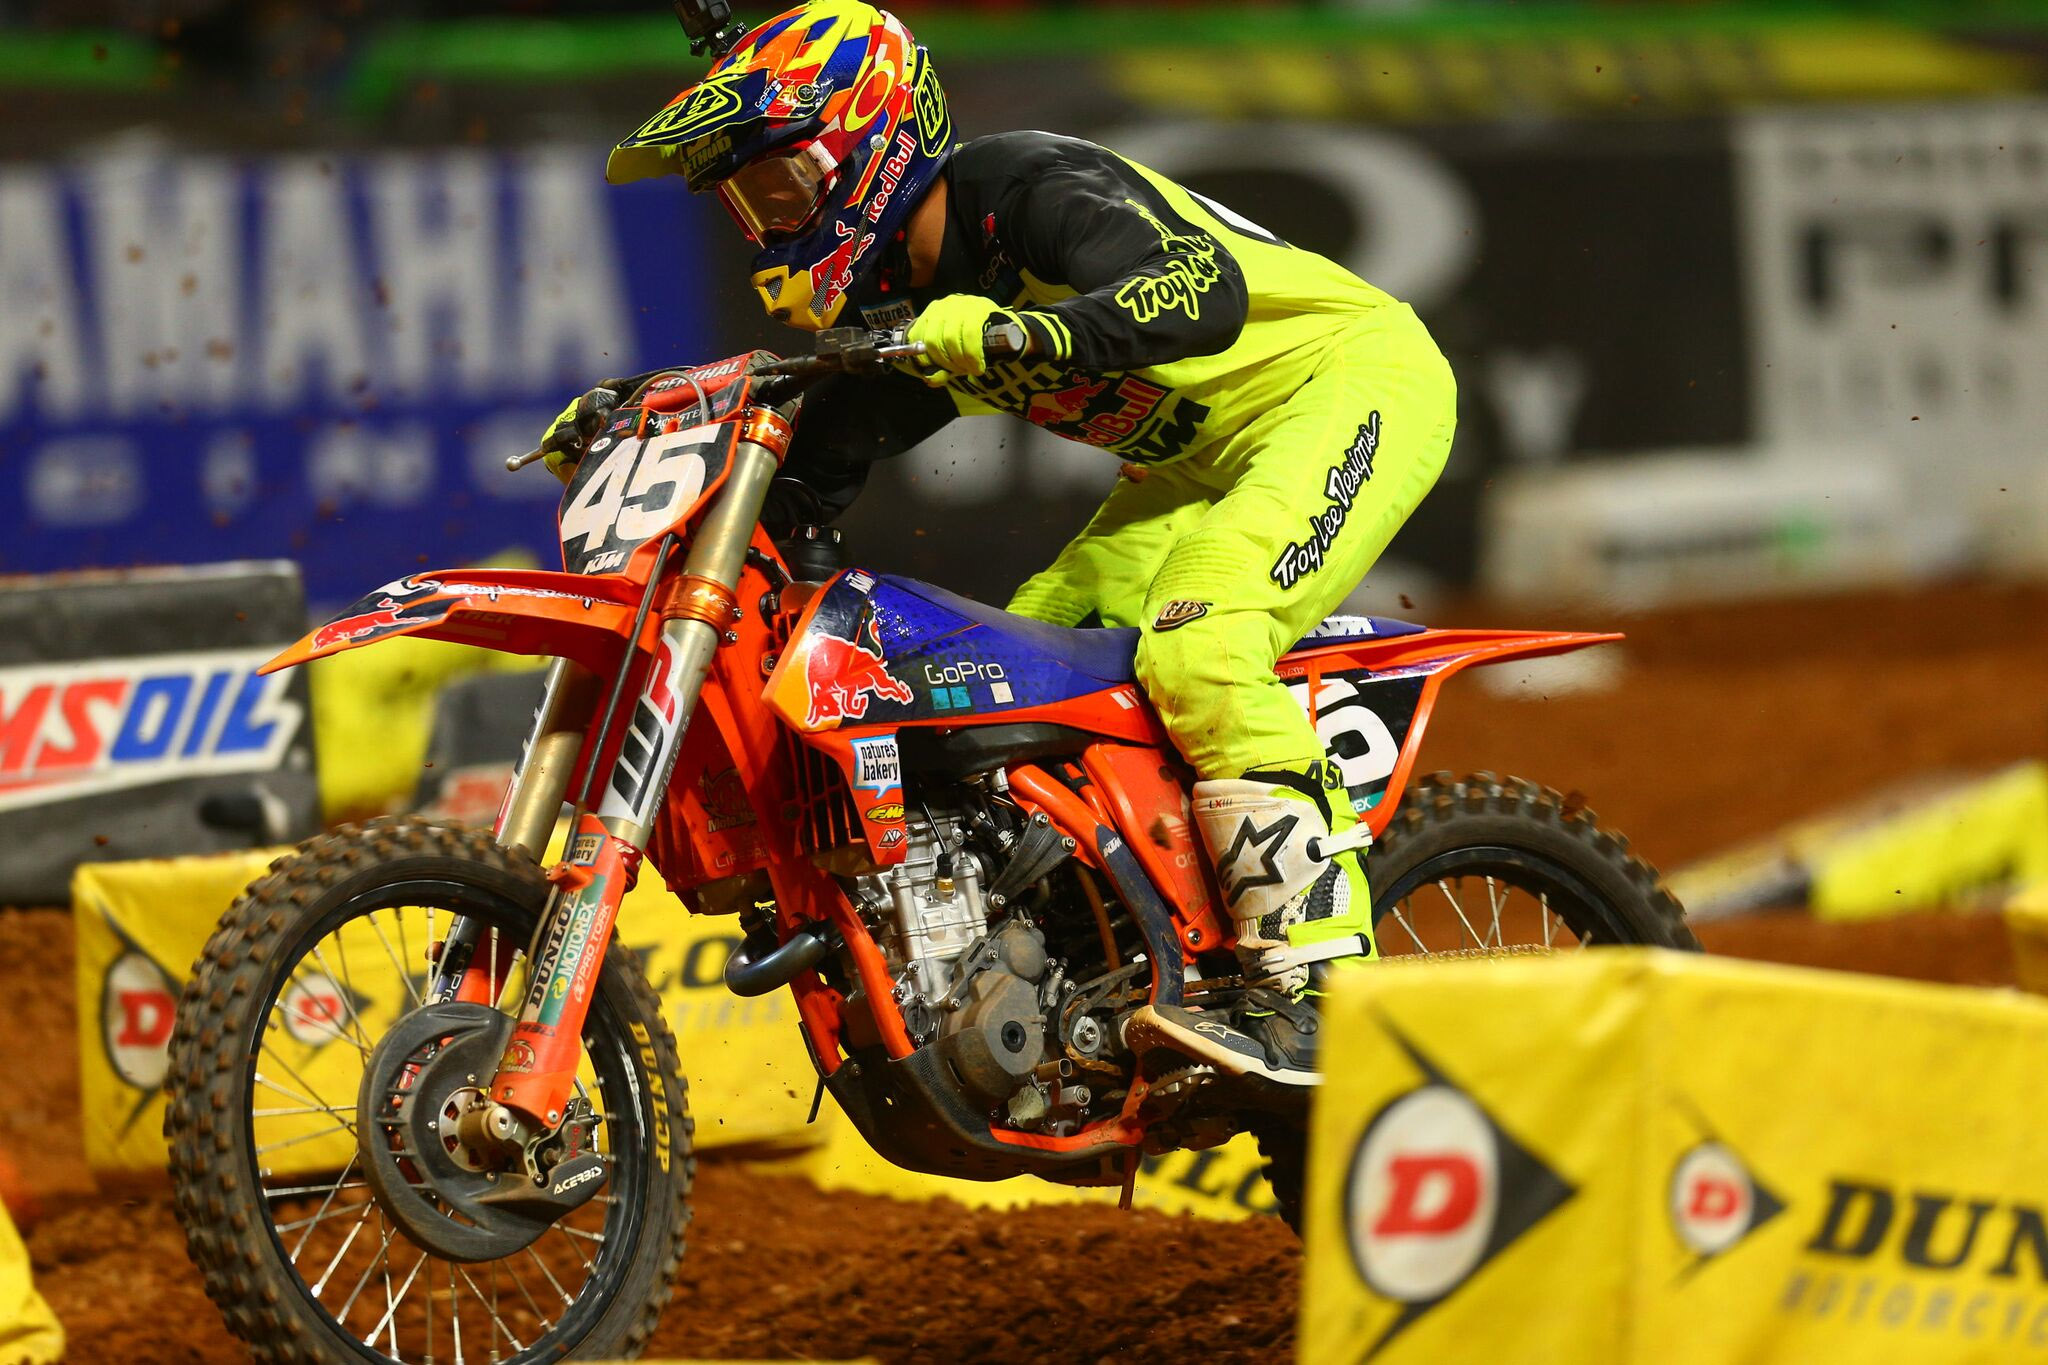 Troy Lee Designs-Red Bull-KTM's Smith Scores First Podium at Home Race in Atlanta